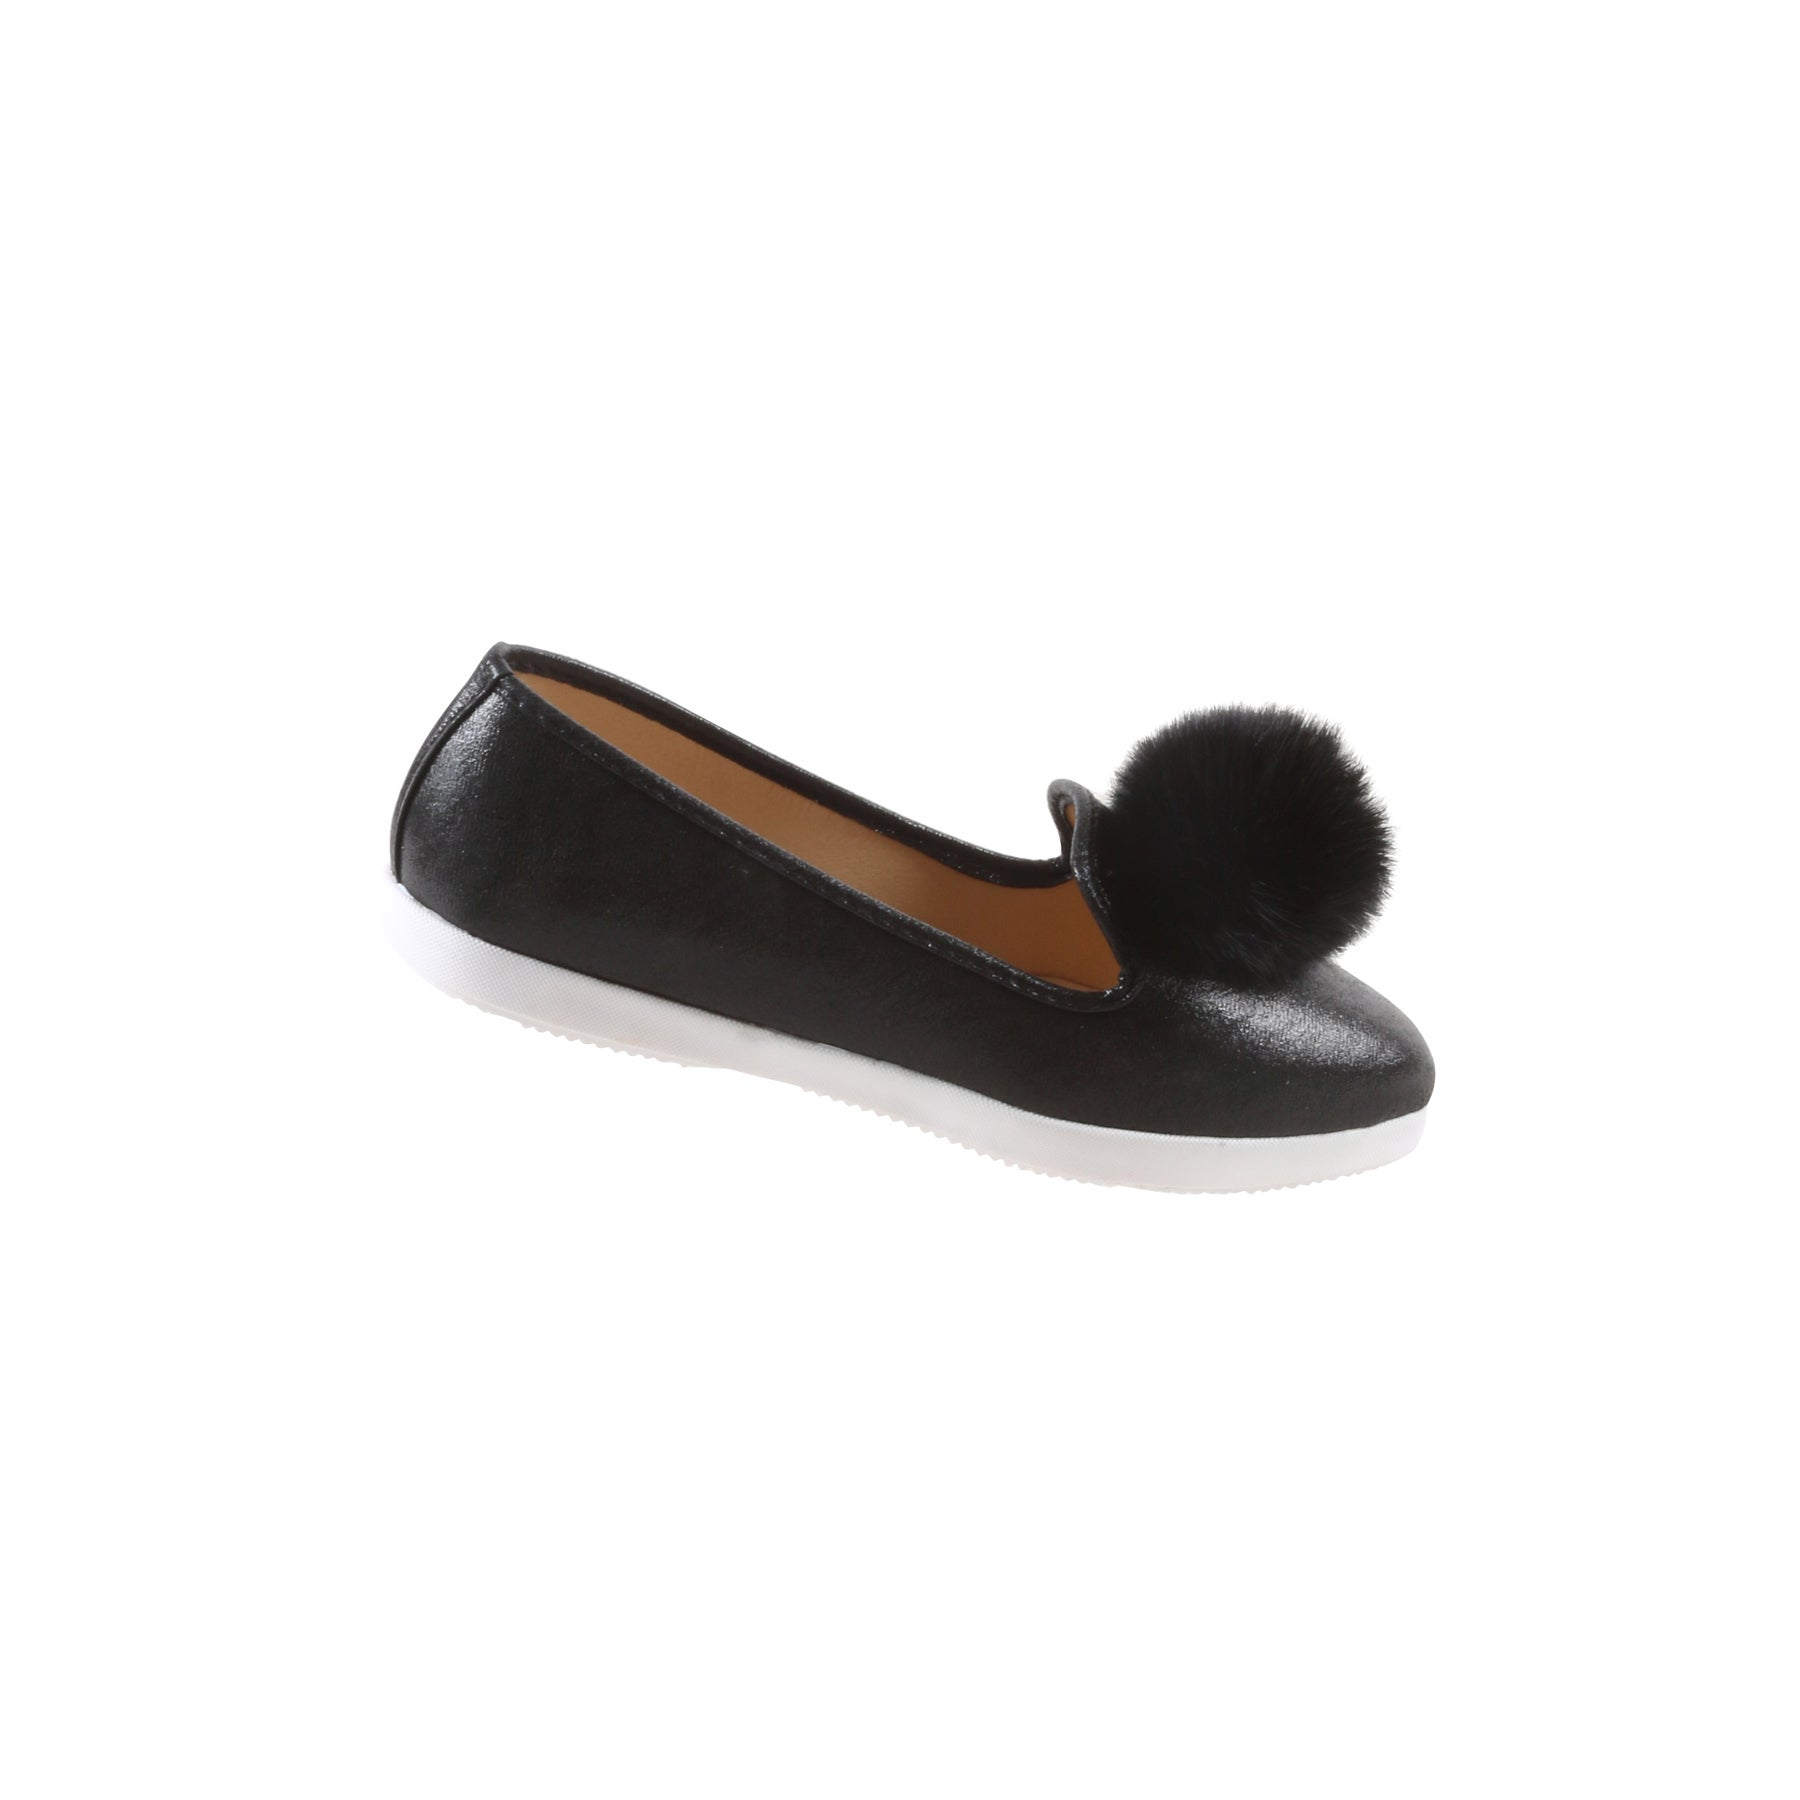 253529a92 Shop Hadari Women's Casual Fashion Slip On Black Pom Pom Flat Shoes ...